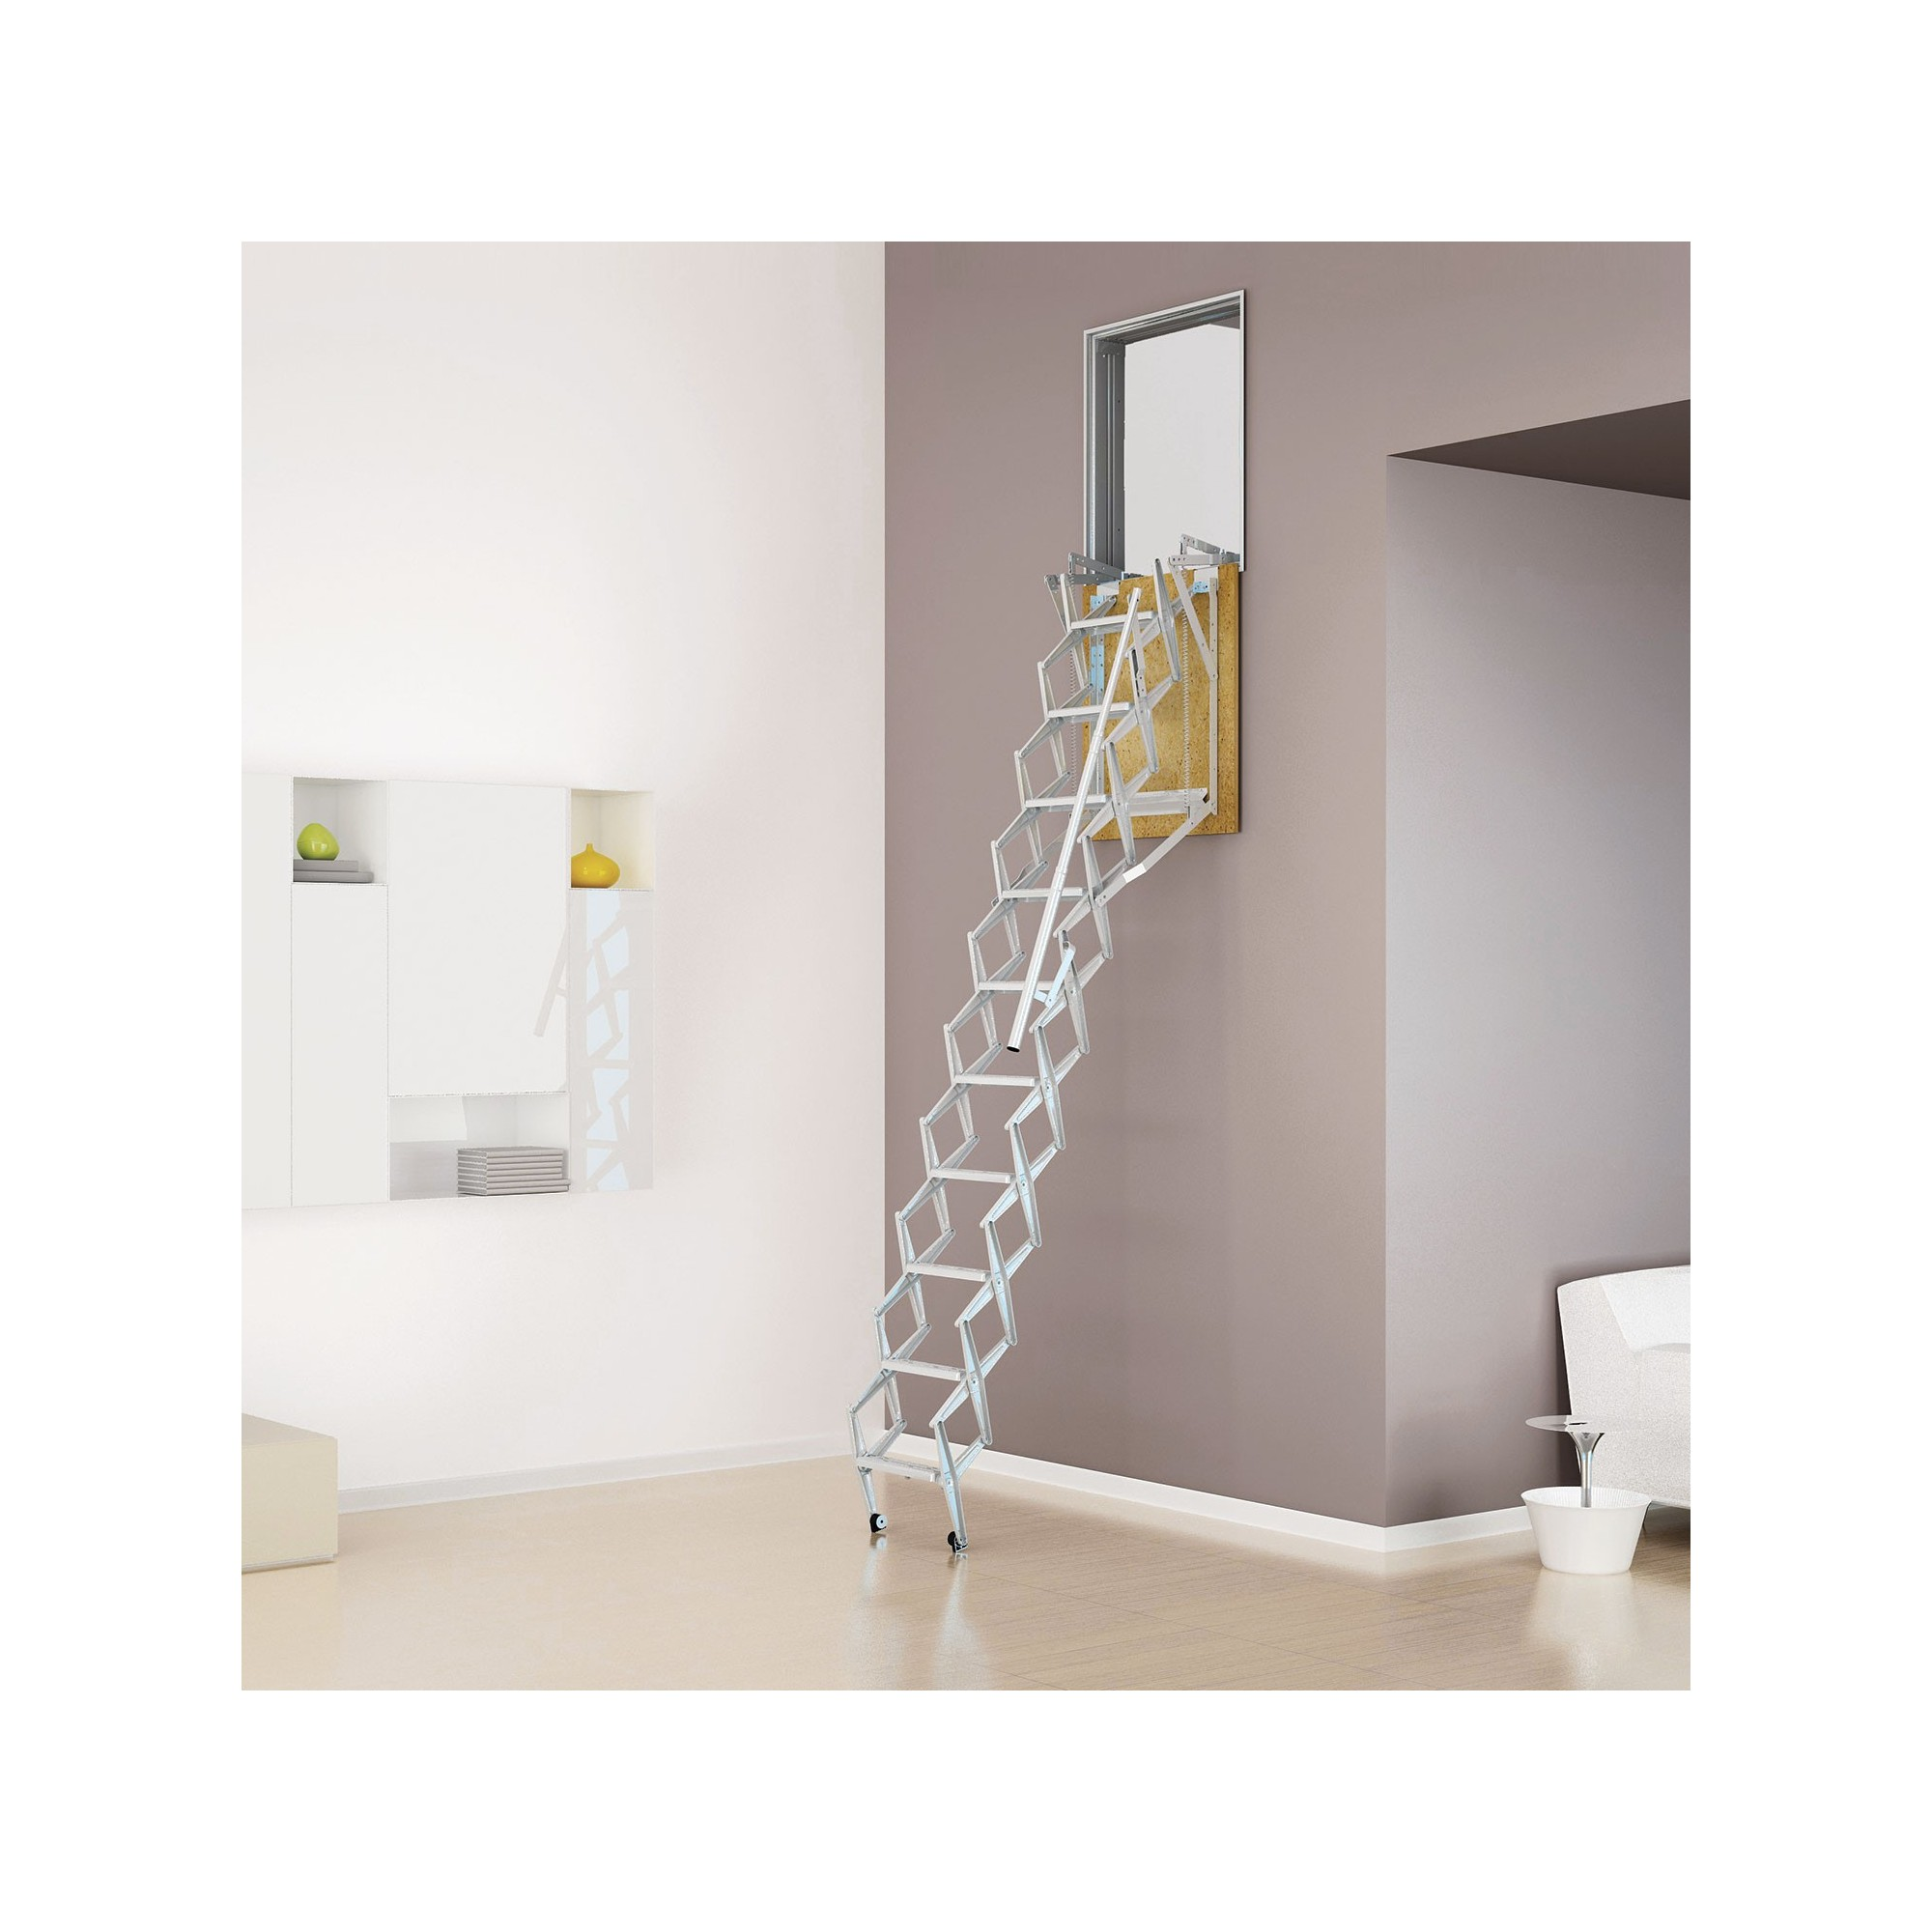 Escalera techo vertical para pared acorde n - Como insonorizar una pared ...